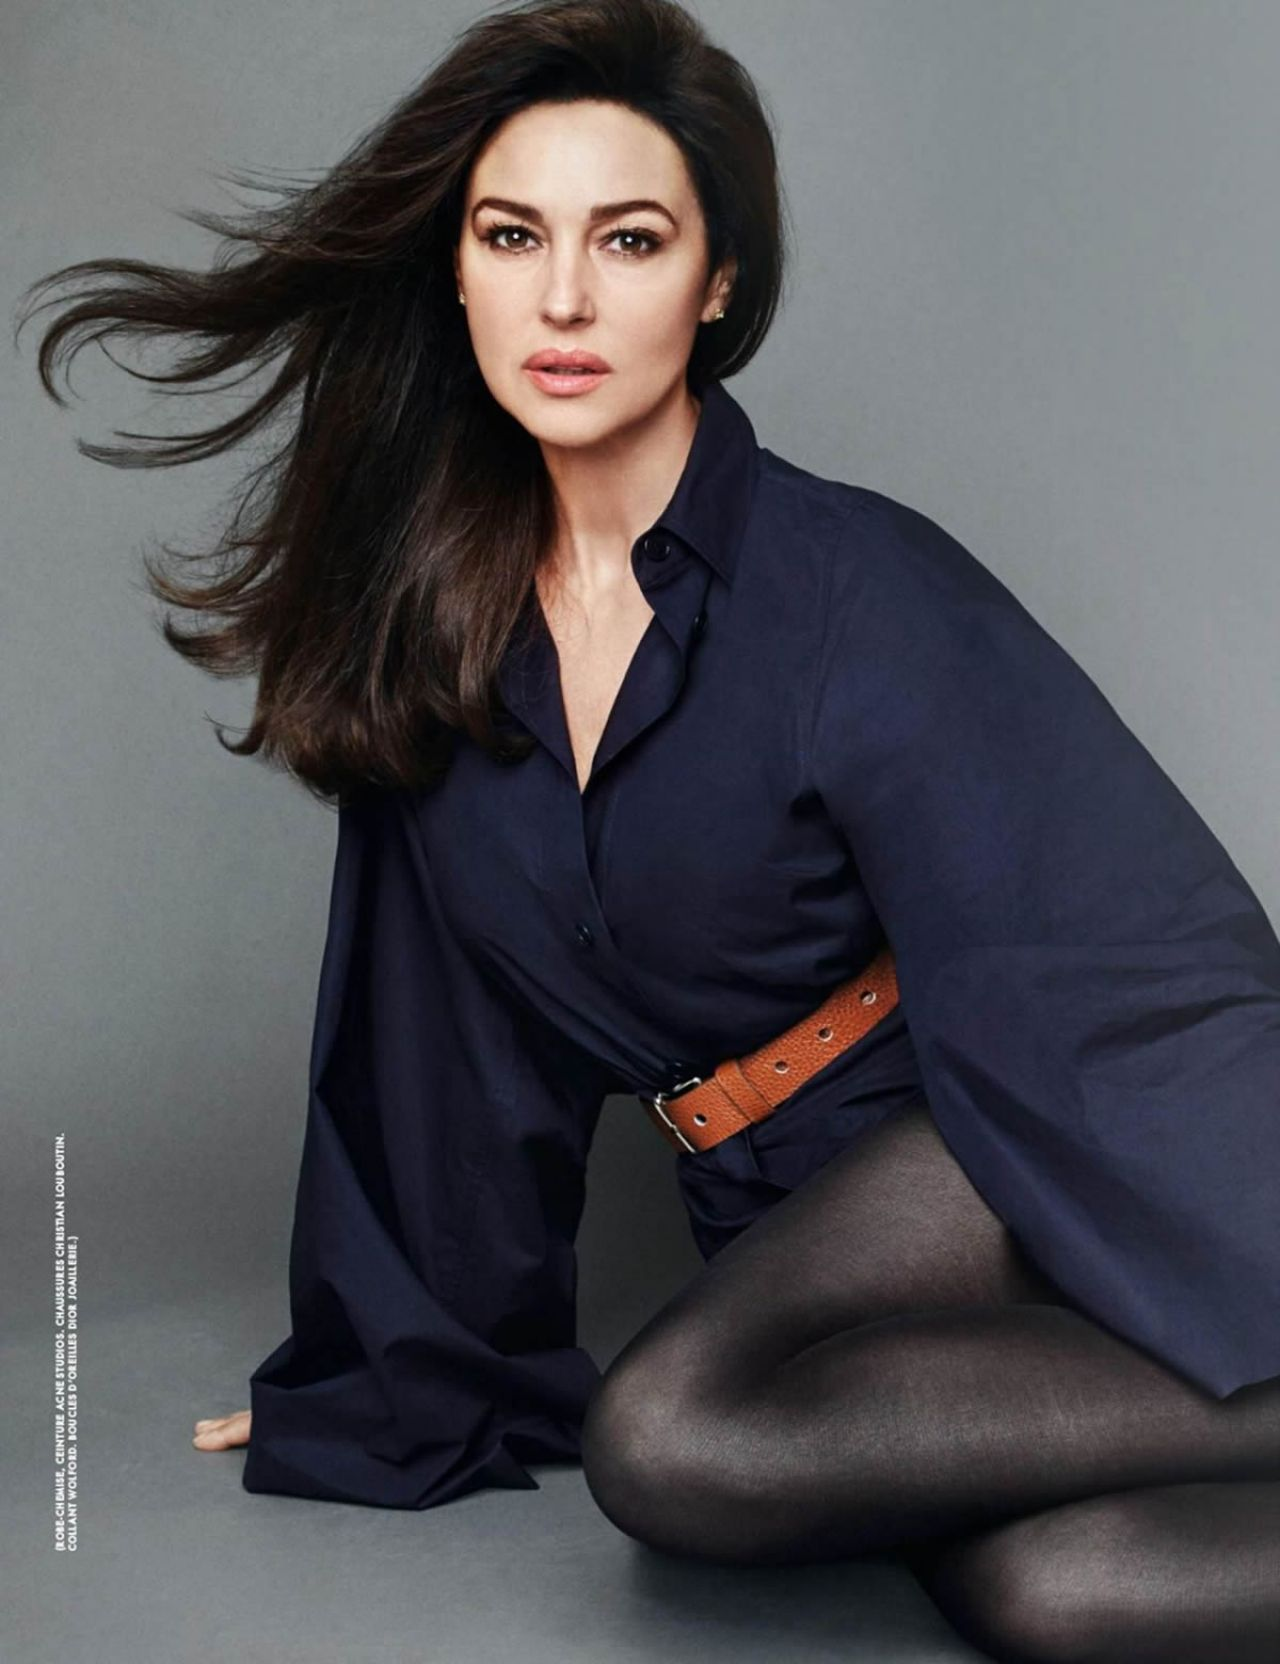 American actress and model: Monica Bellucci